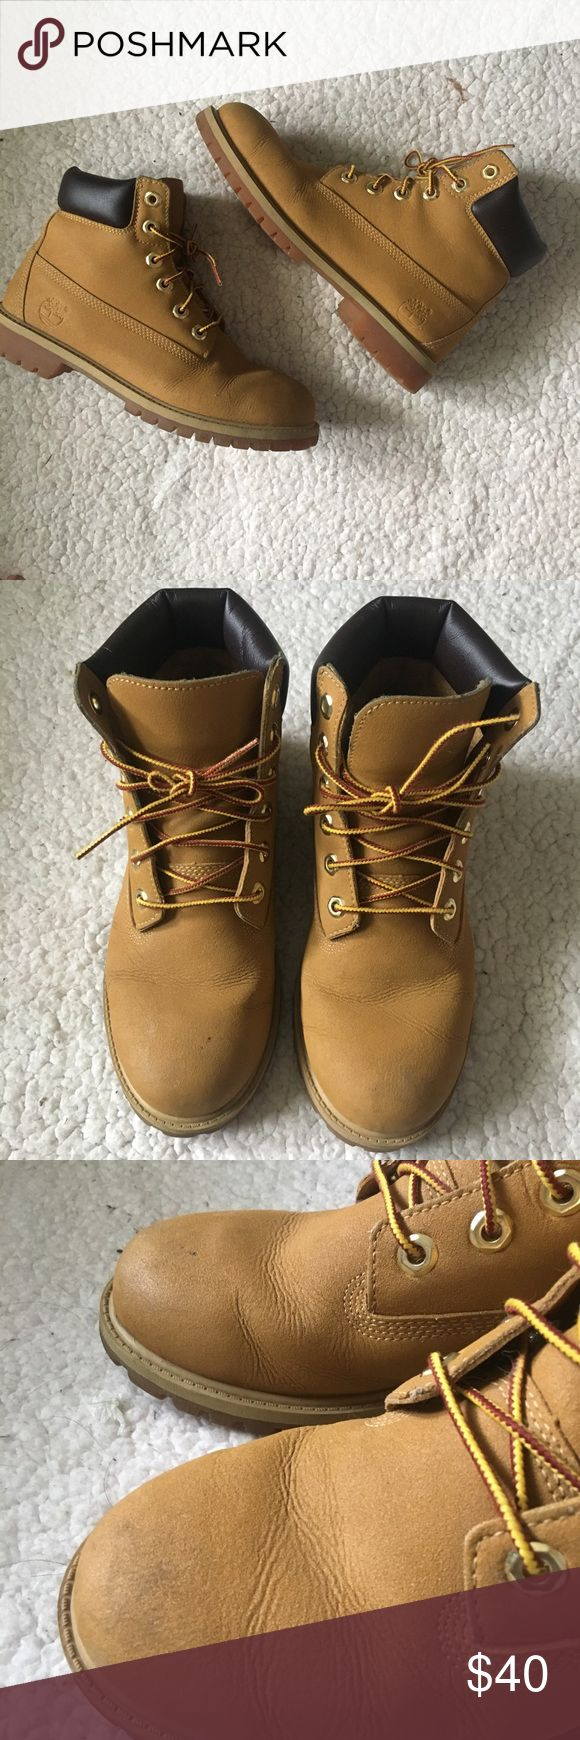 """❗️Timberlands❗️ * Wheat Timberland boots in gently used condition. These are a size men's 6 but fit a women's 7 1/2. Please view all photos.   ❌ NO TRADES ❌ ✨ AUTHENTIC ✨ 🌀 MAKE OFFERS 🌀  *** If you see more than one item you like, click on the """"add to bundle"""" option & give me an offer! I make amazing bundle deals! 💥 Timberland Shoes Lace Up Boots"""